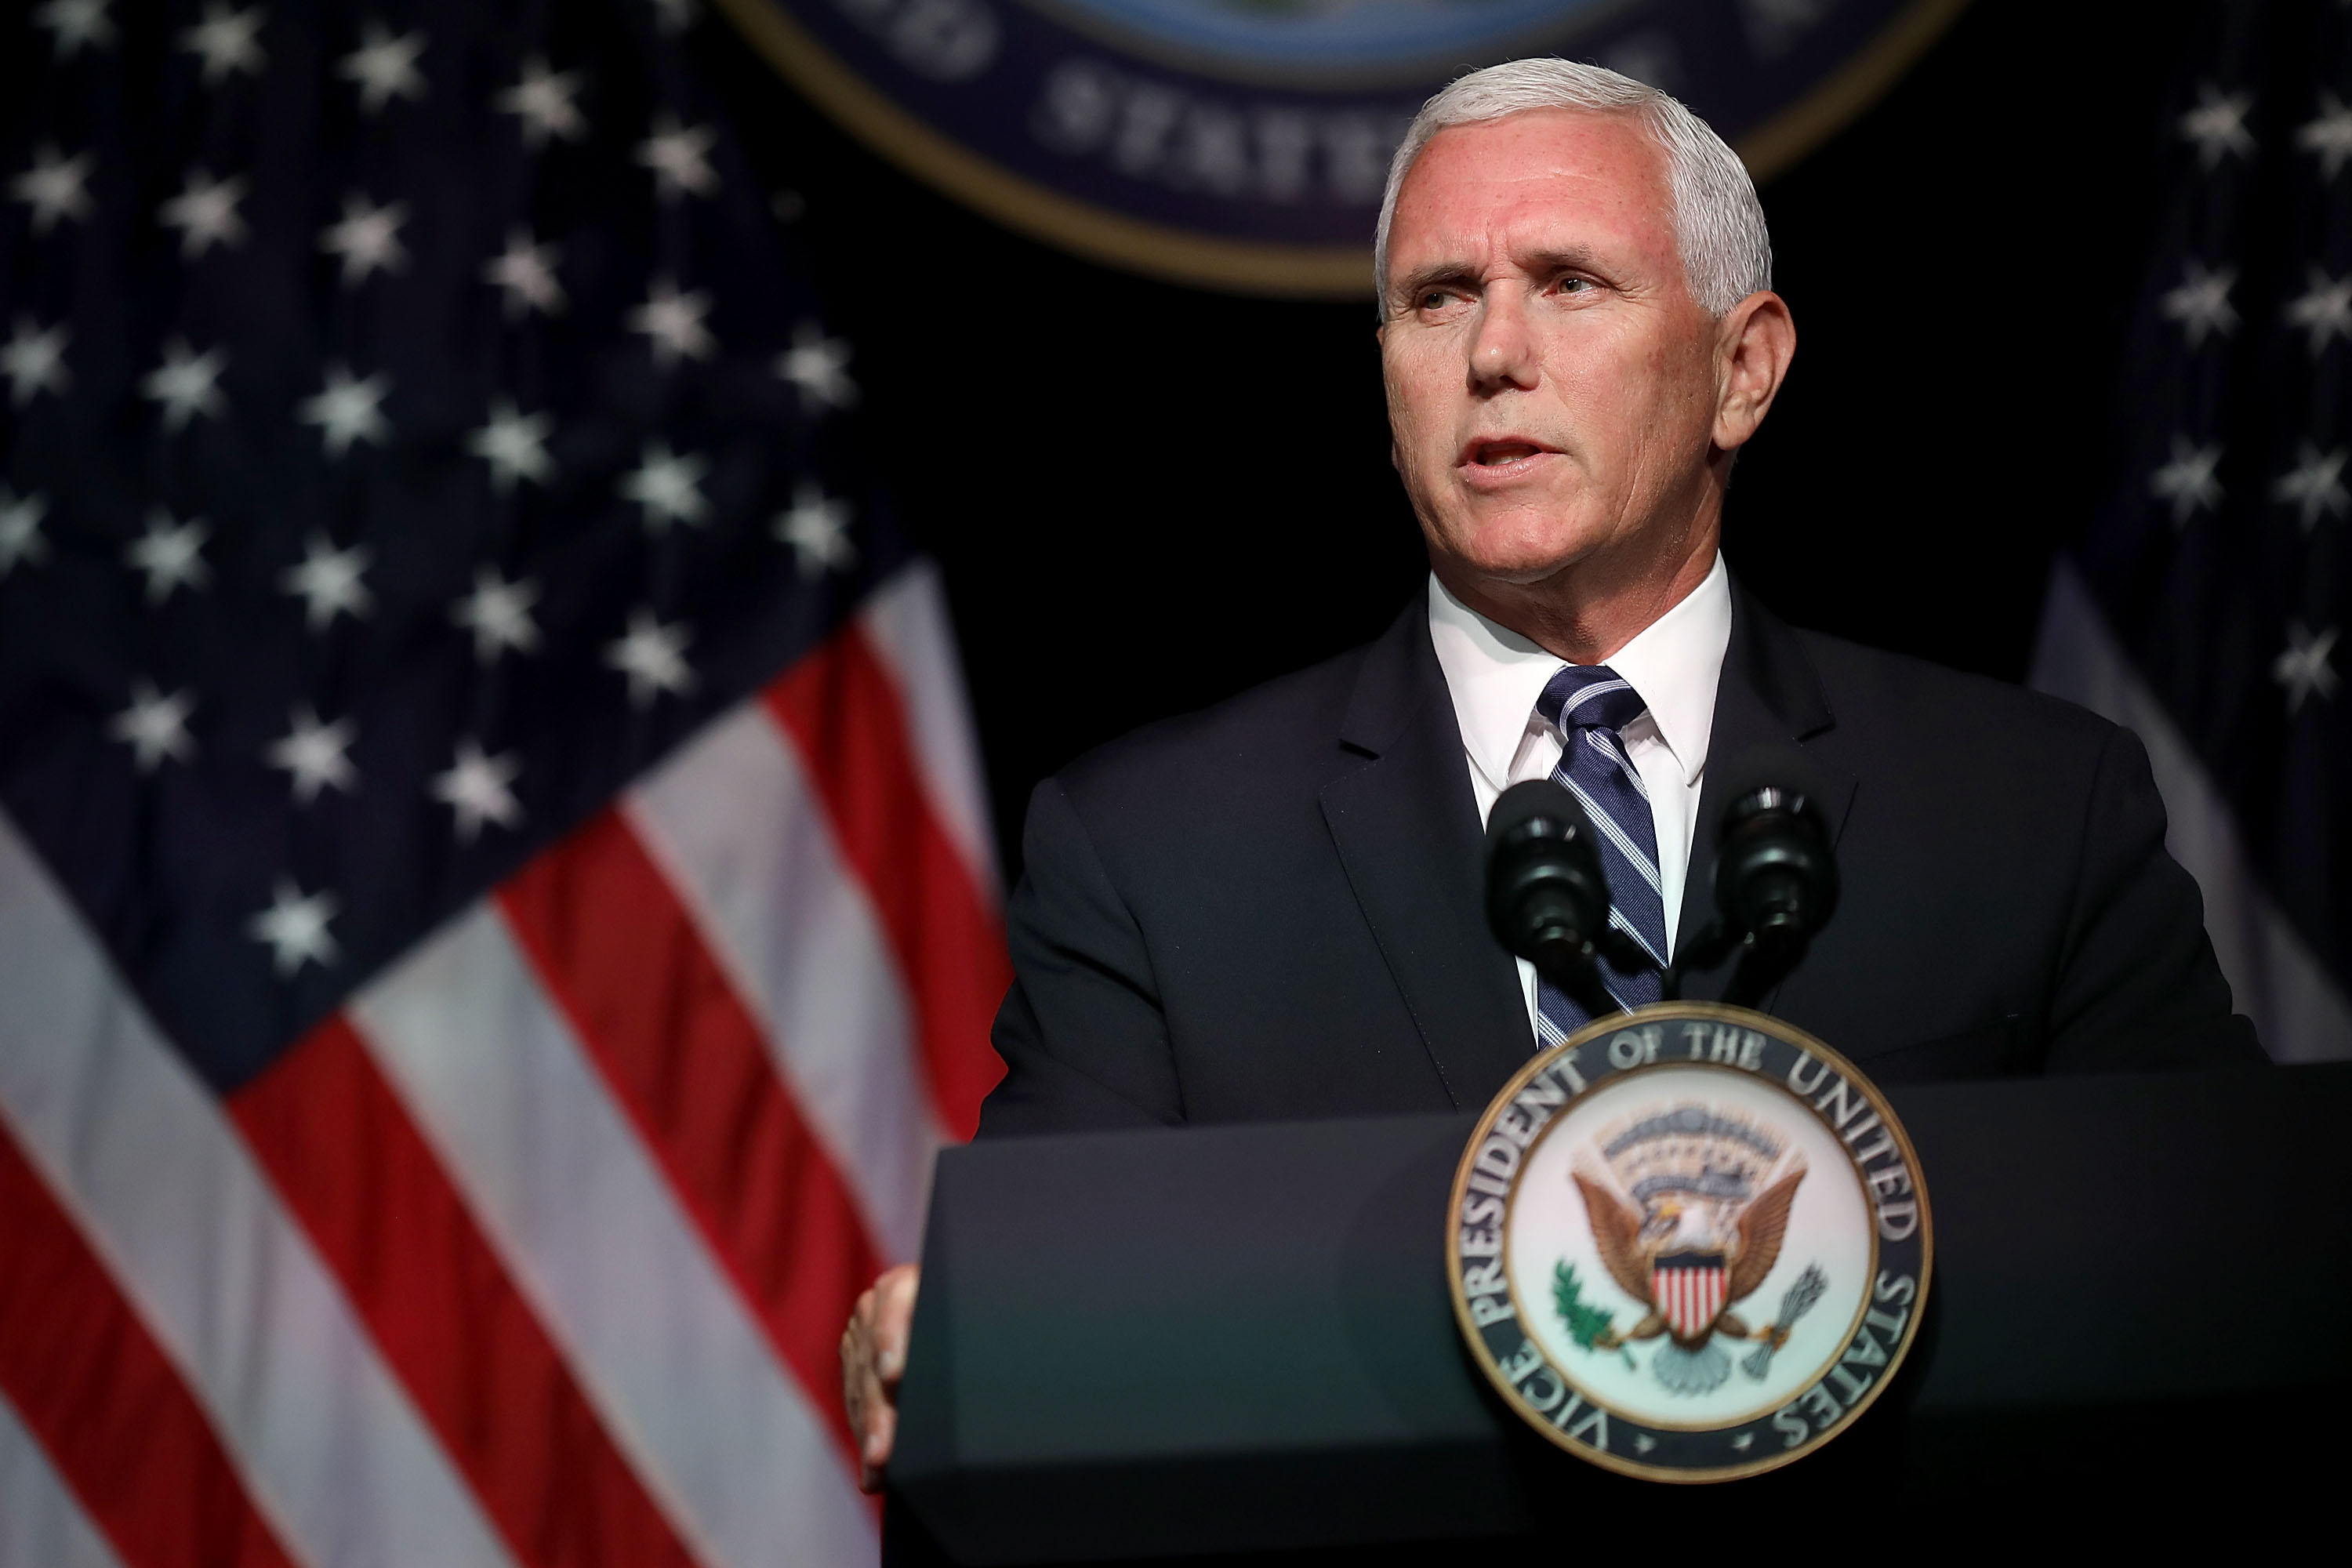 US Vice President Mike Pence giving a speech from a lectern that features the seal of the president. An American flag is visible in the background.